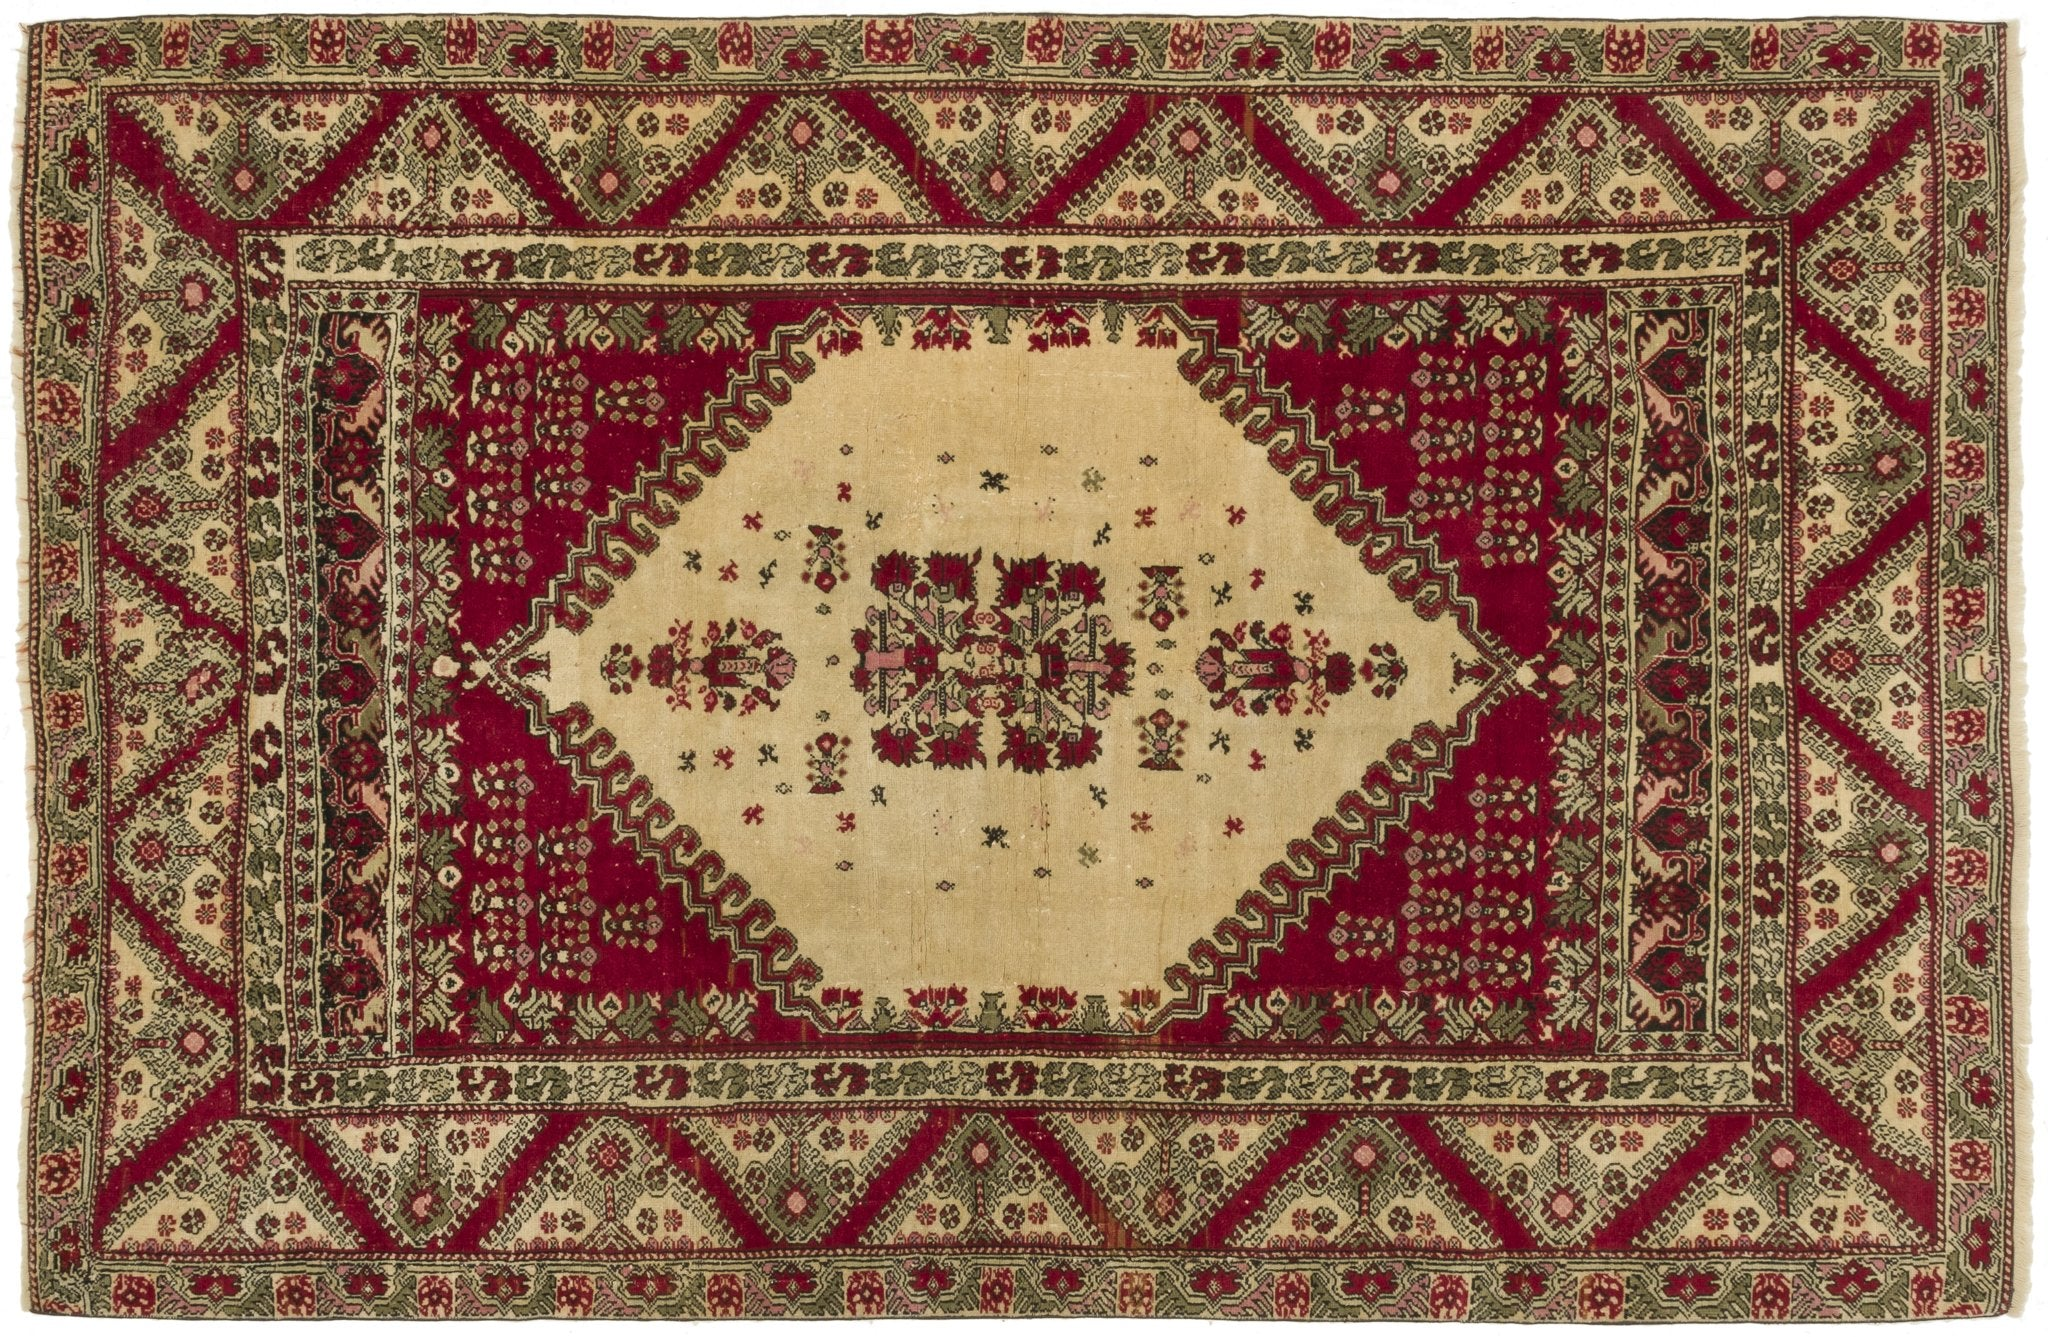 Vintage Turkish Rug Eirian